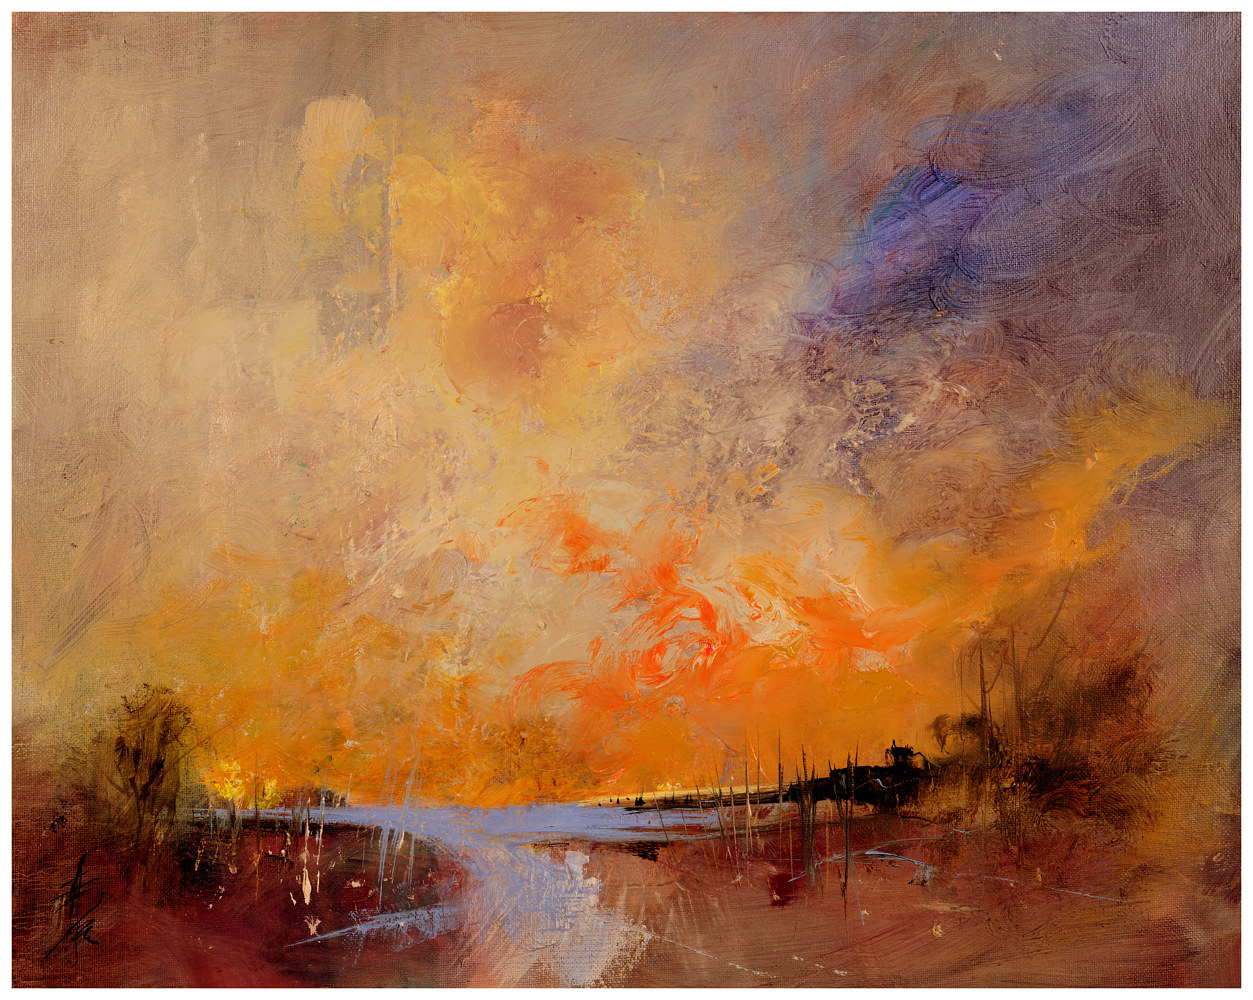 Sky Ablaze, 16x20, oil on box canvas. by Anne Farrall Doyle